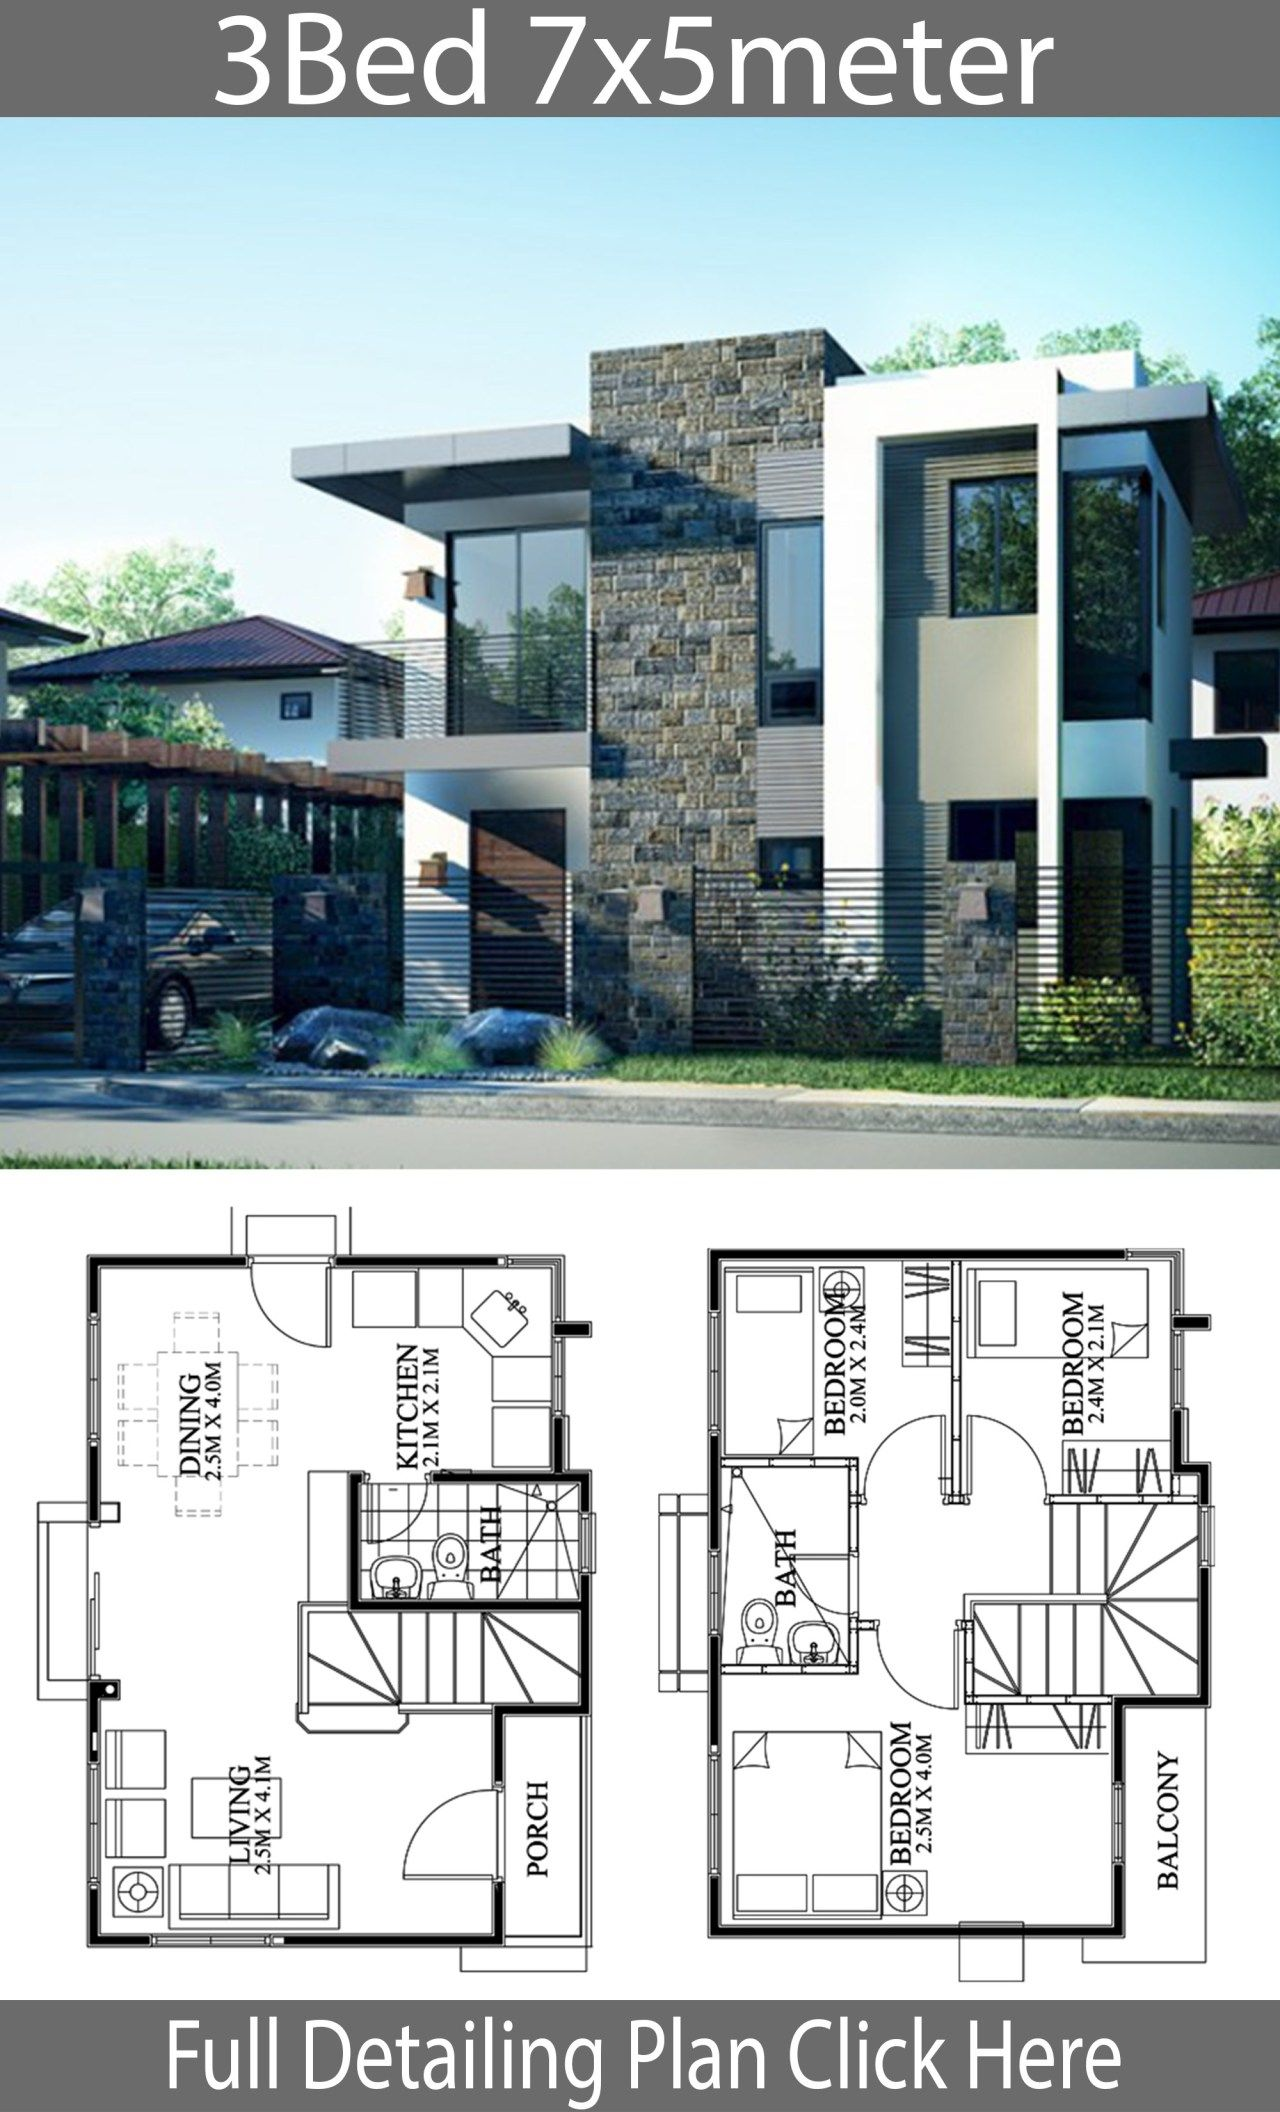 Small Home Design Plan 7x5m With 3 Bedrooms Home Ideas Modern House Design Small House Design Plans House Architecture Design